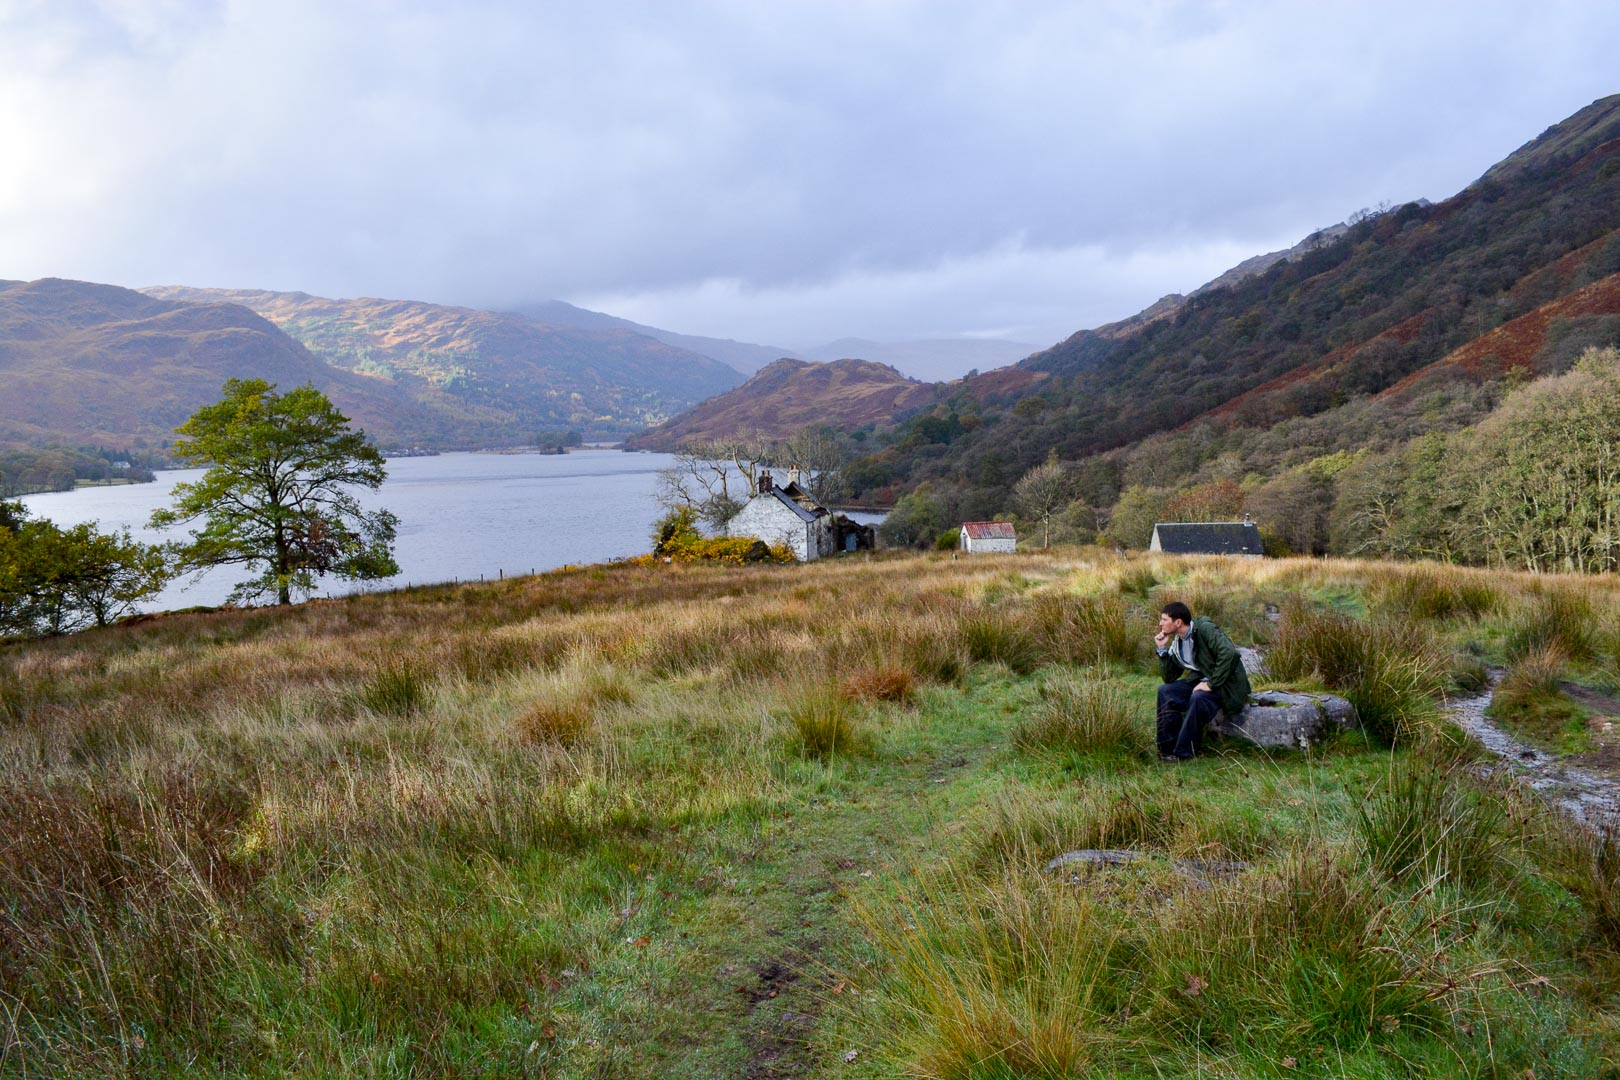 Pondering if we will ever reach the end of Loch Lomond